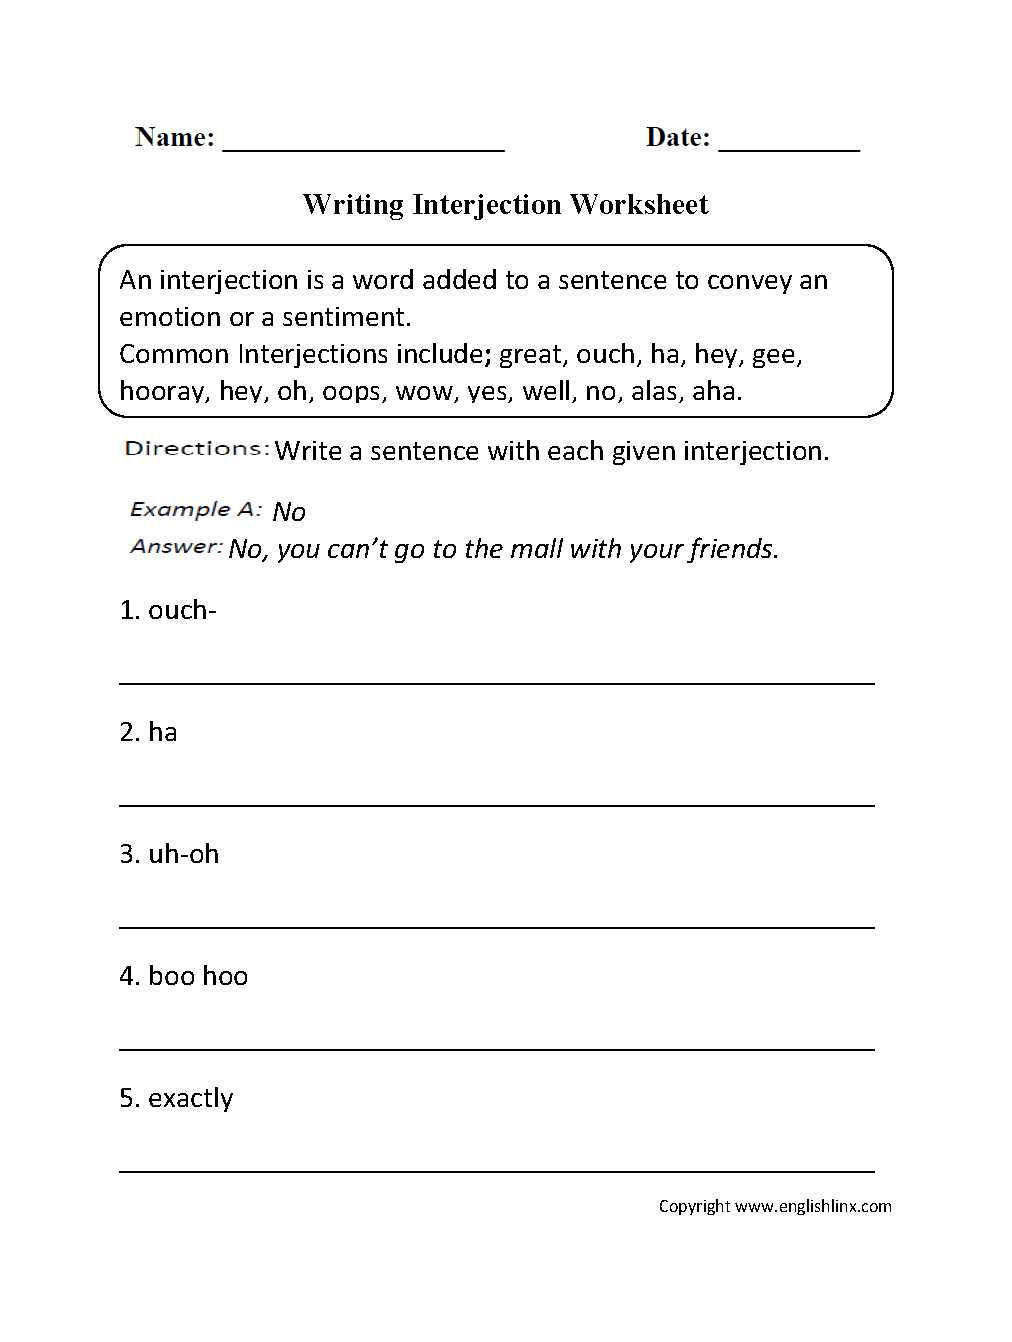 Workbooks speech worksheets : Parts Speech Worksheets | Interjection Worksheets